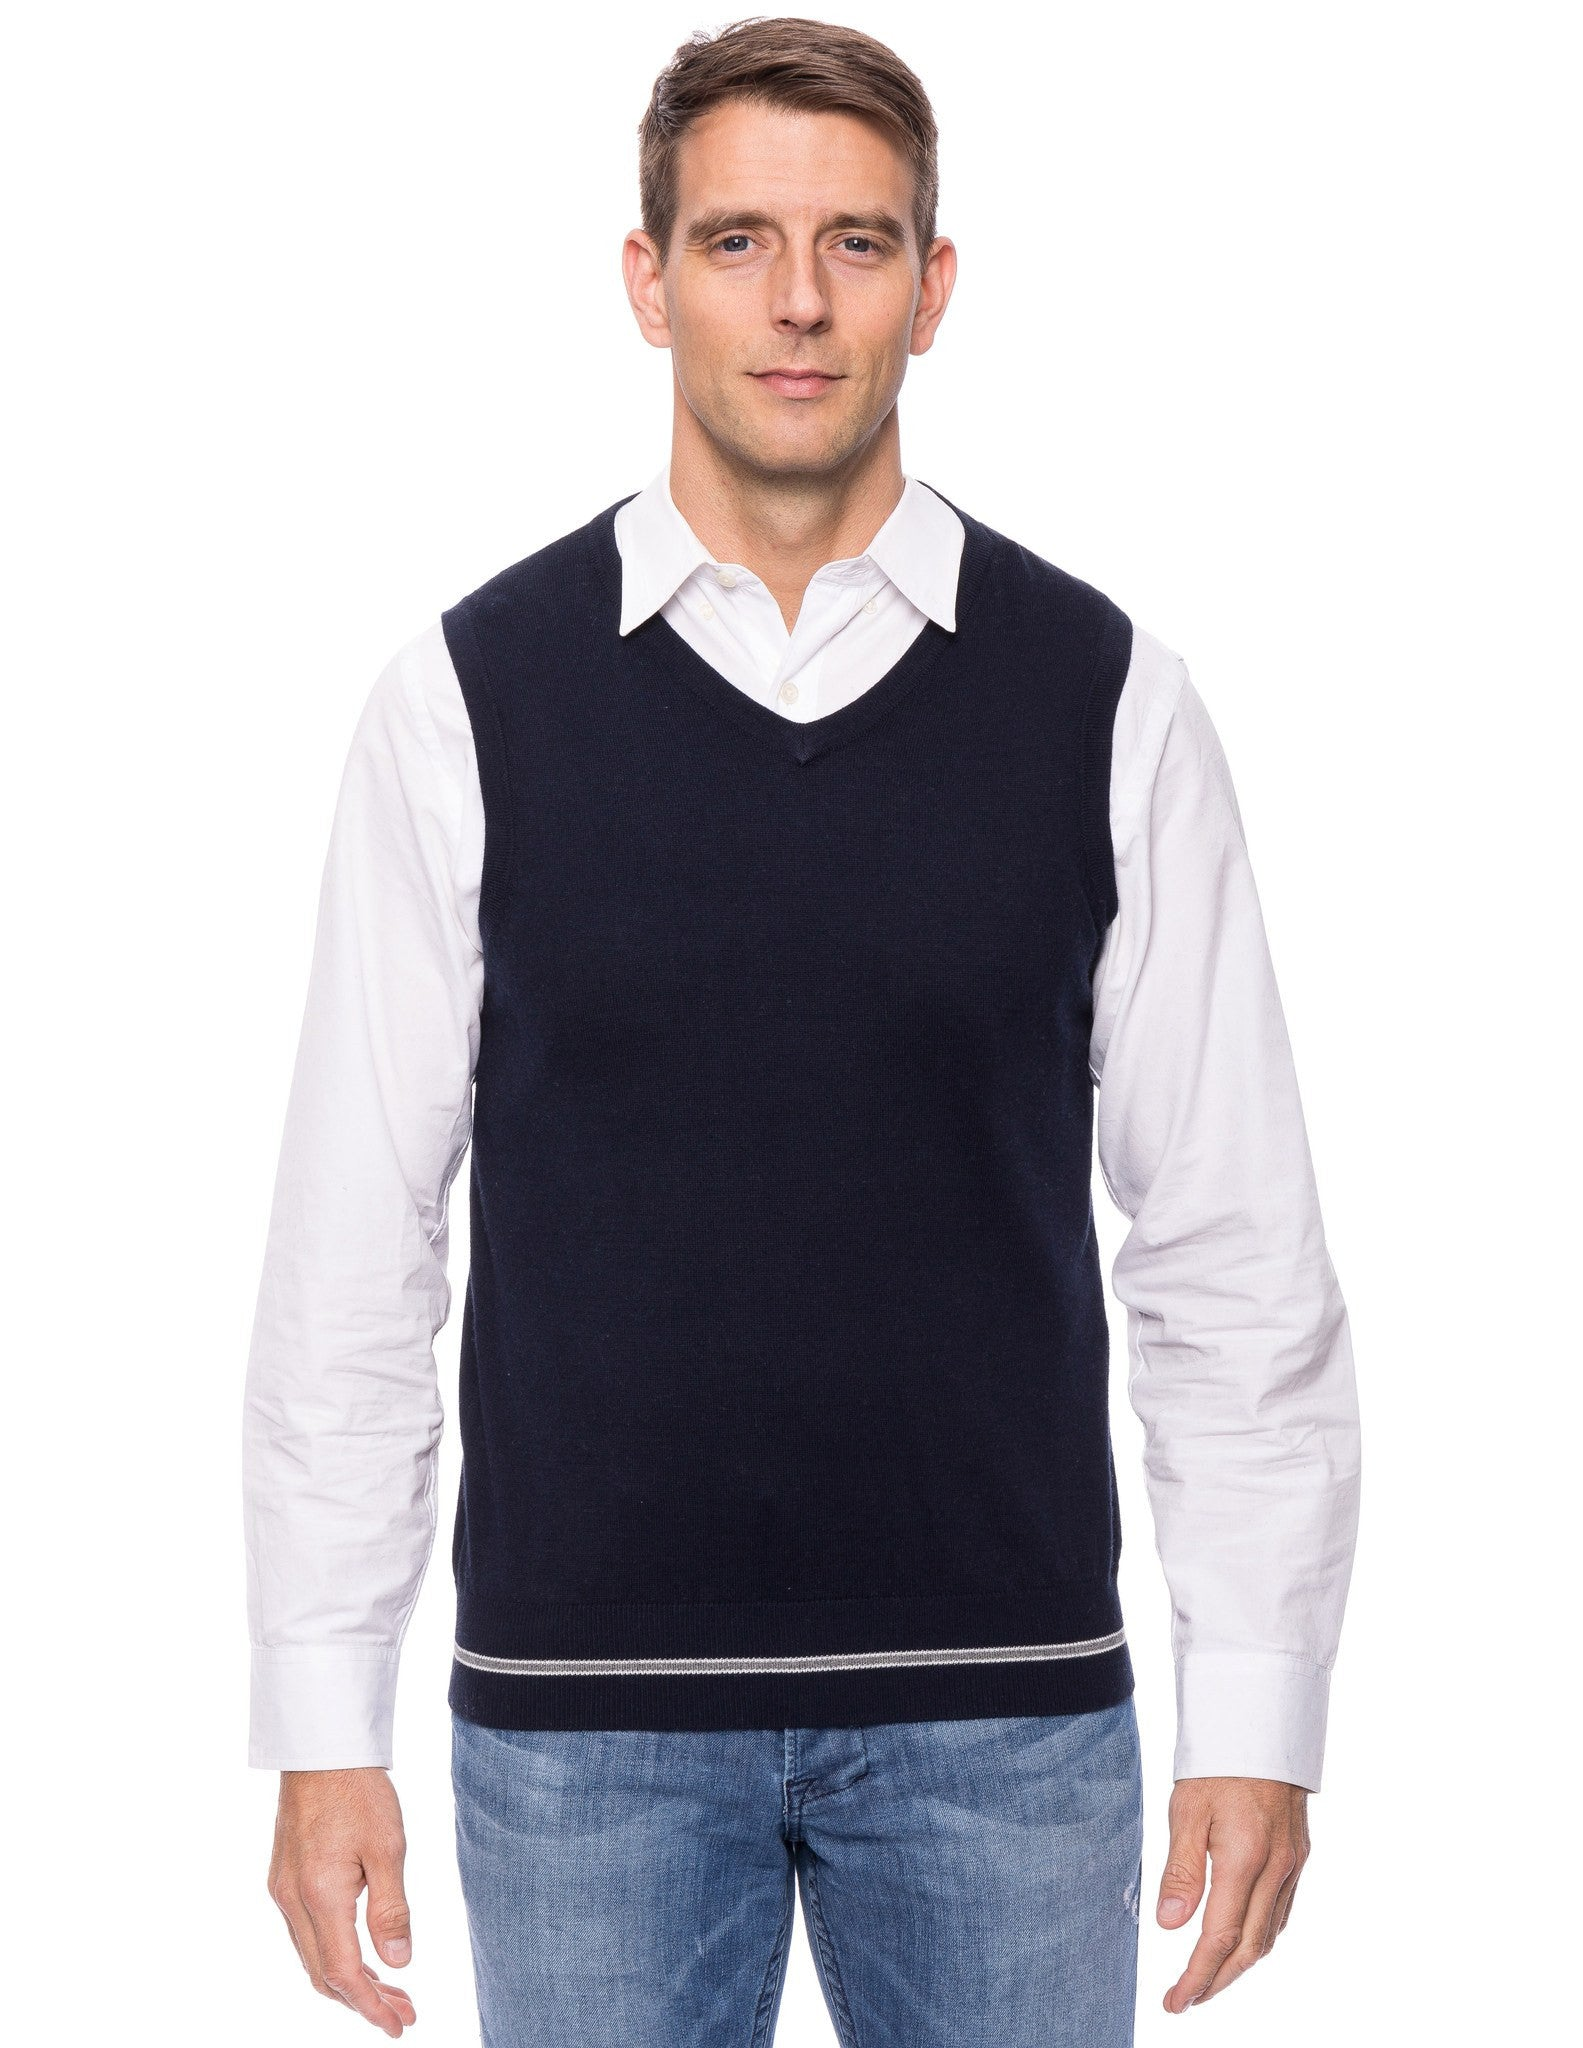 Cashmere Blend Sweater Vest - Navy